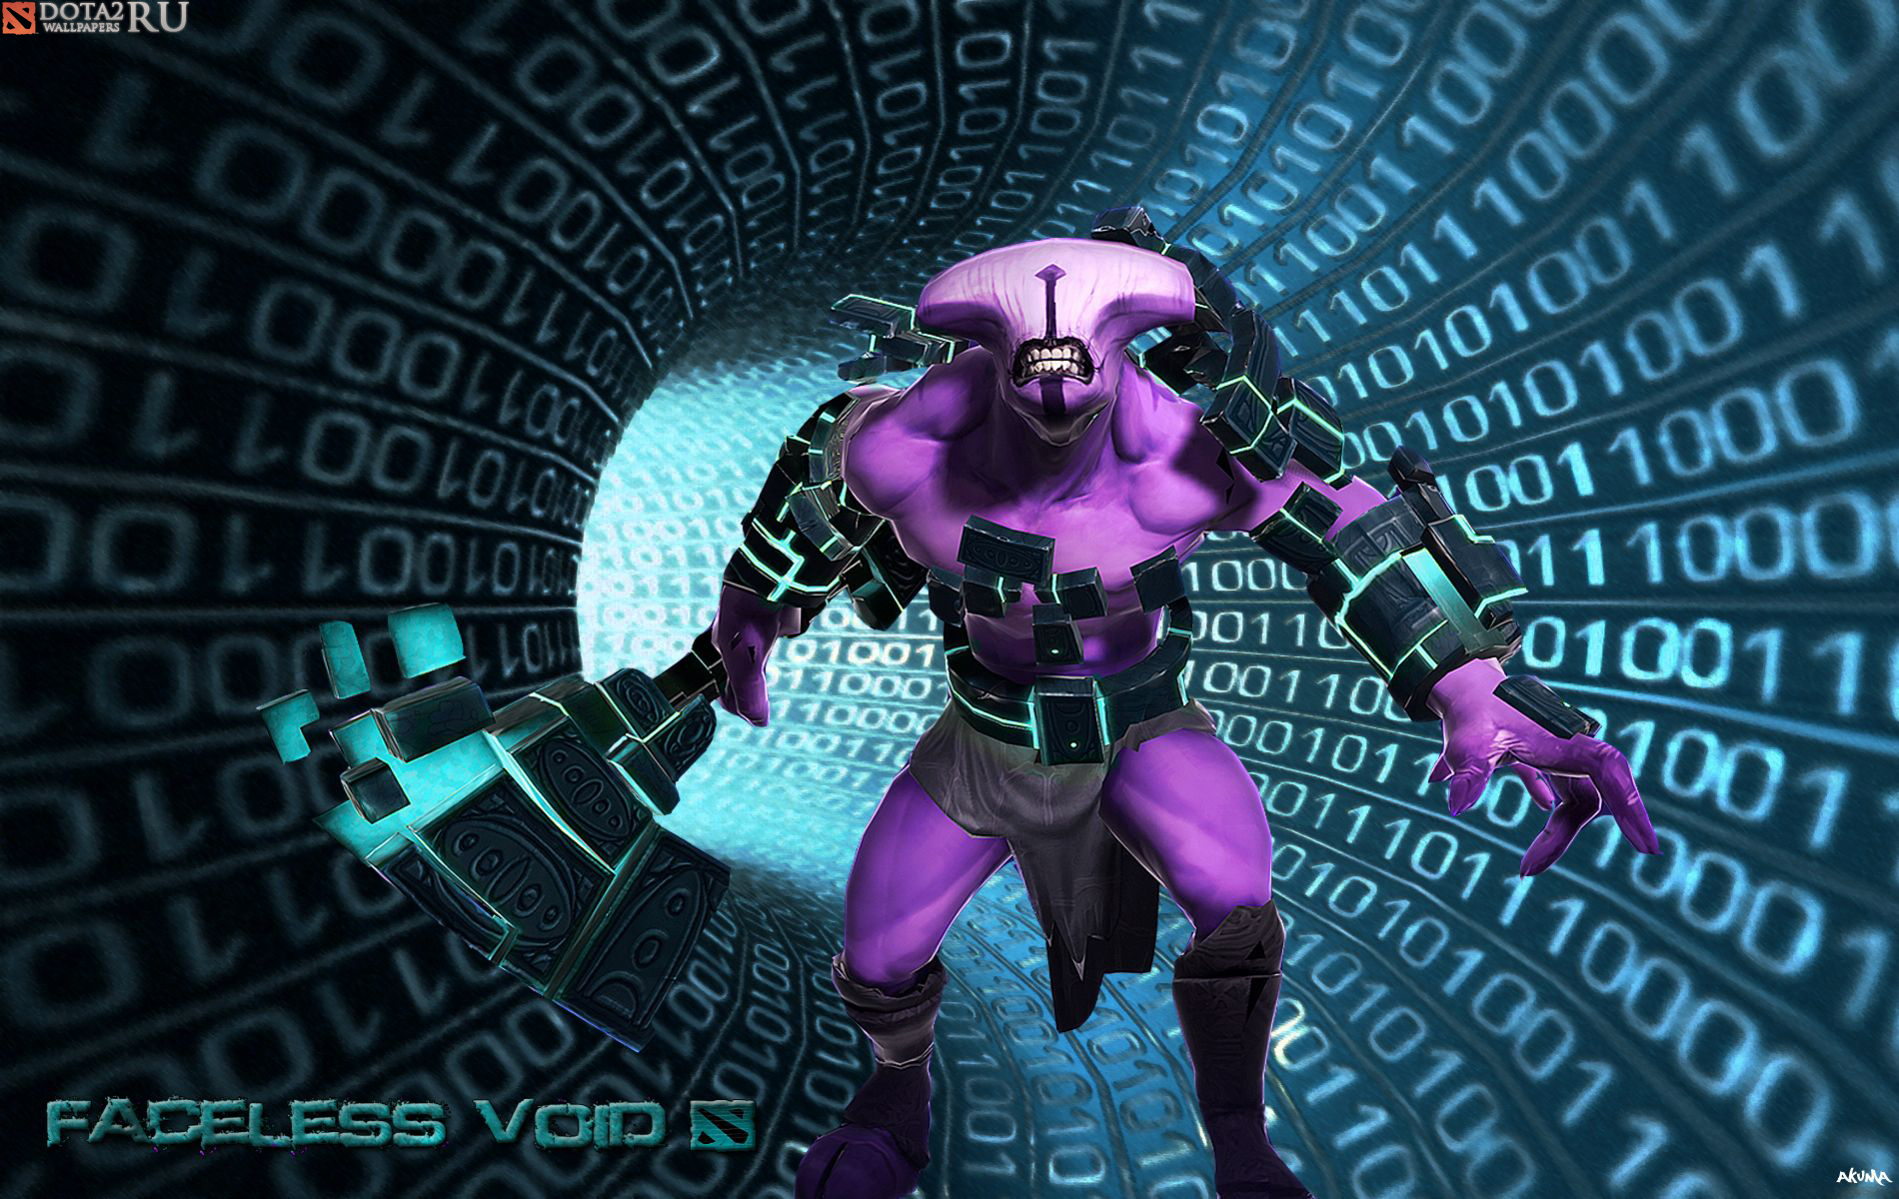 Dota 2 Images Faceless Void Update Splash Wallpaper HD Wallpaper And Background Photos 36653463